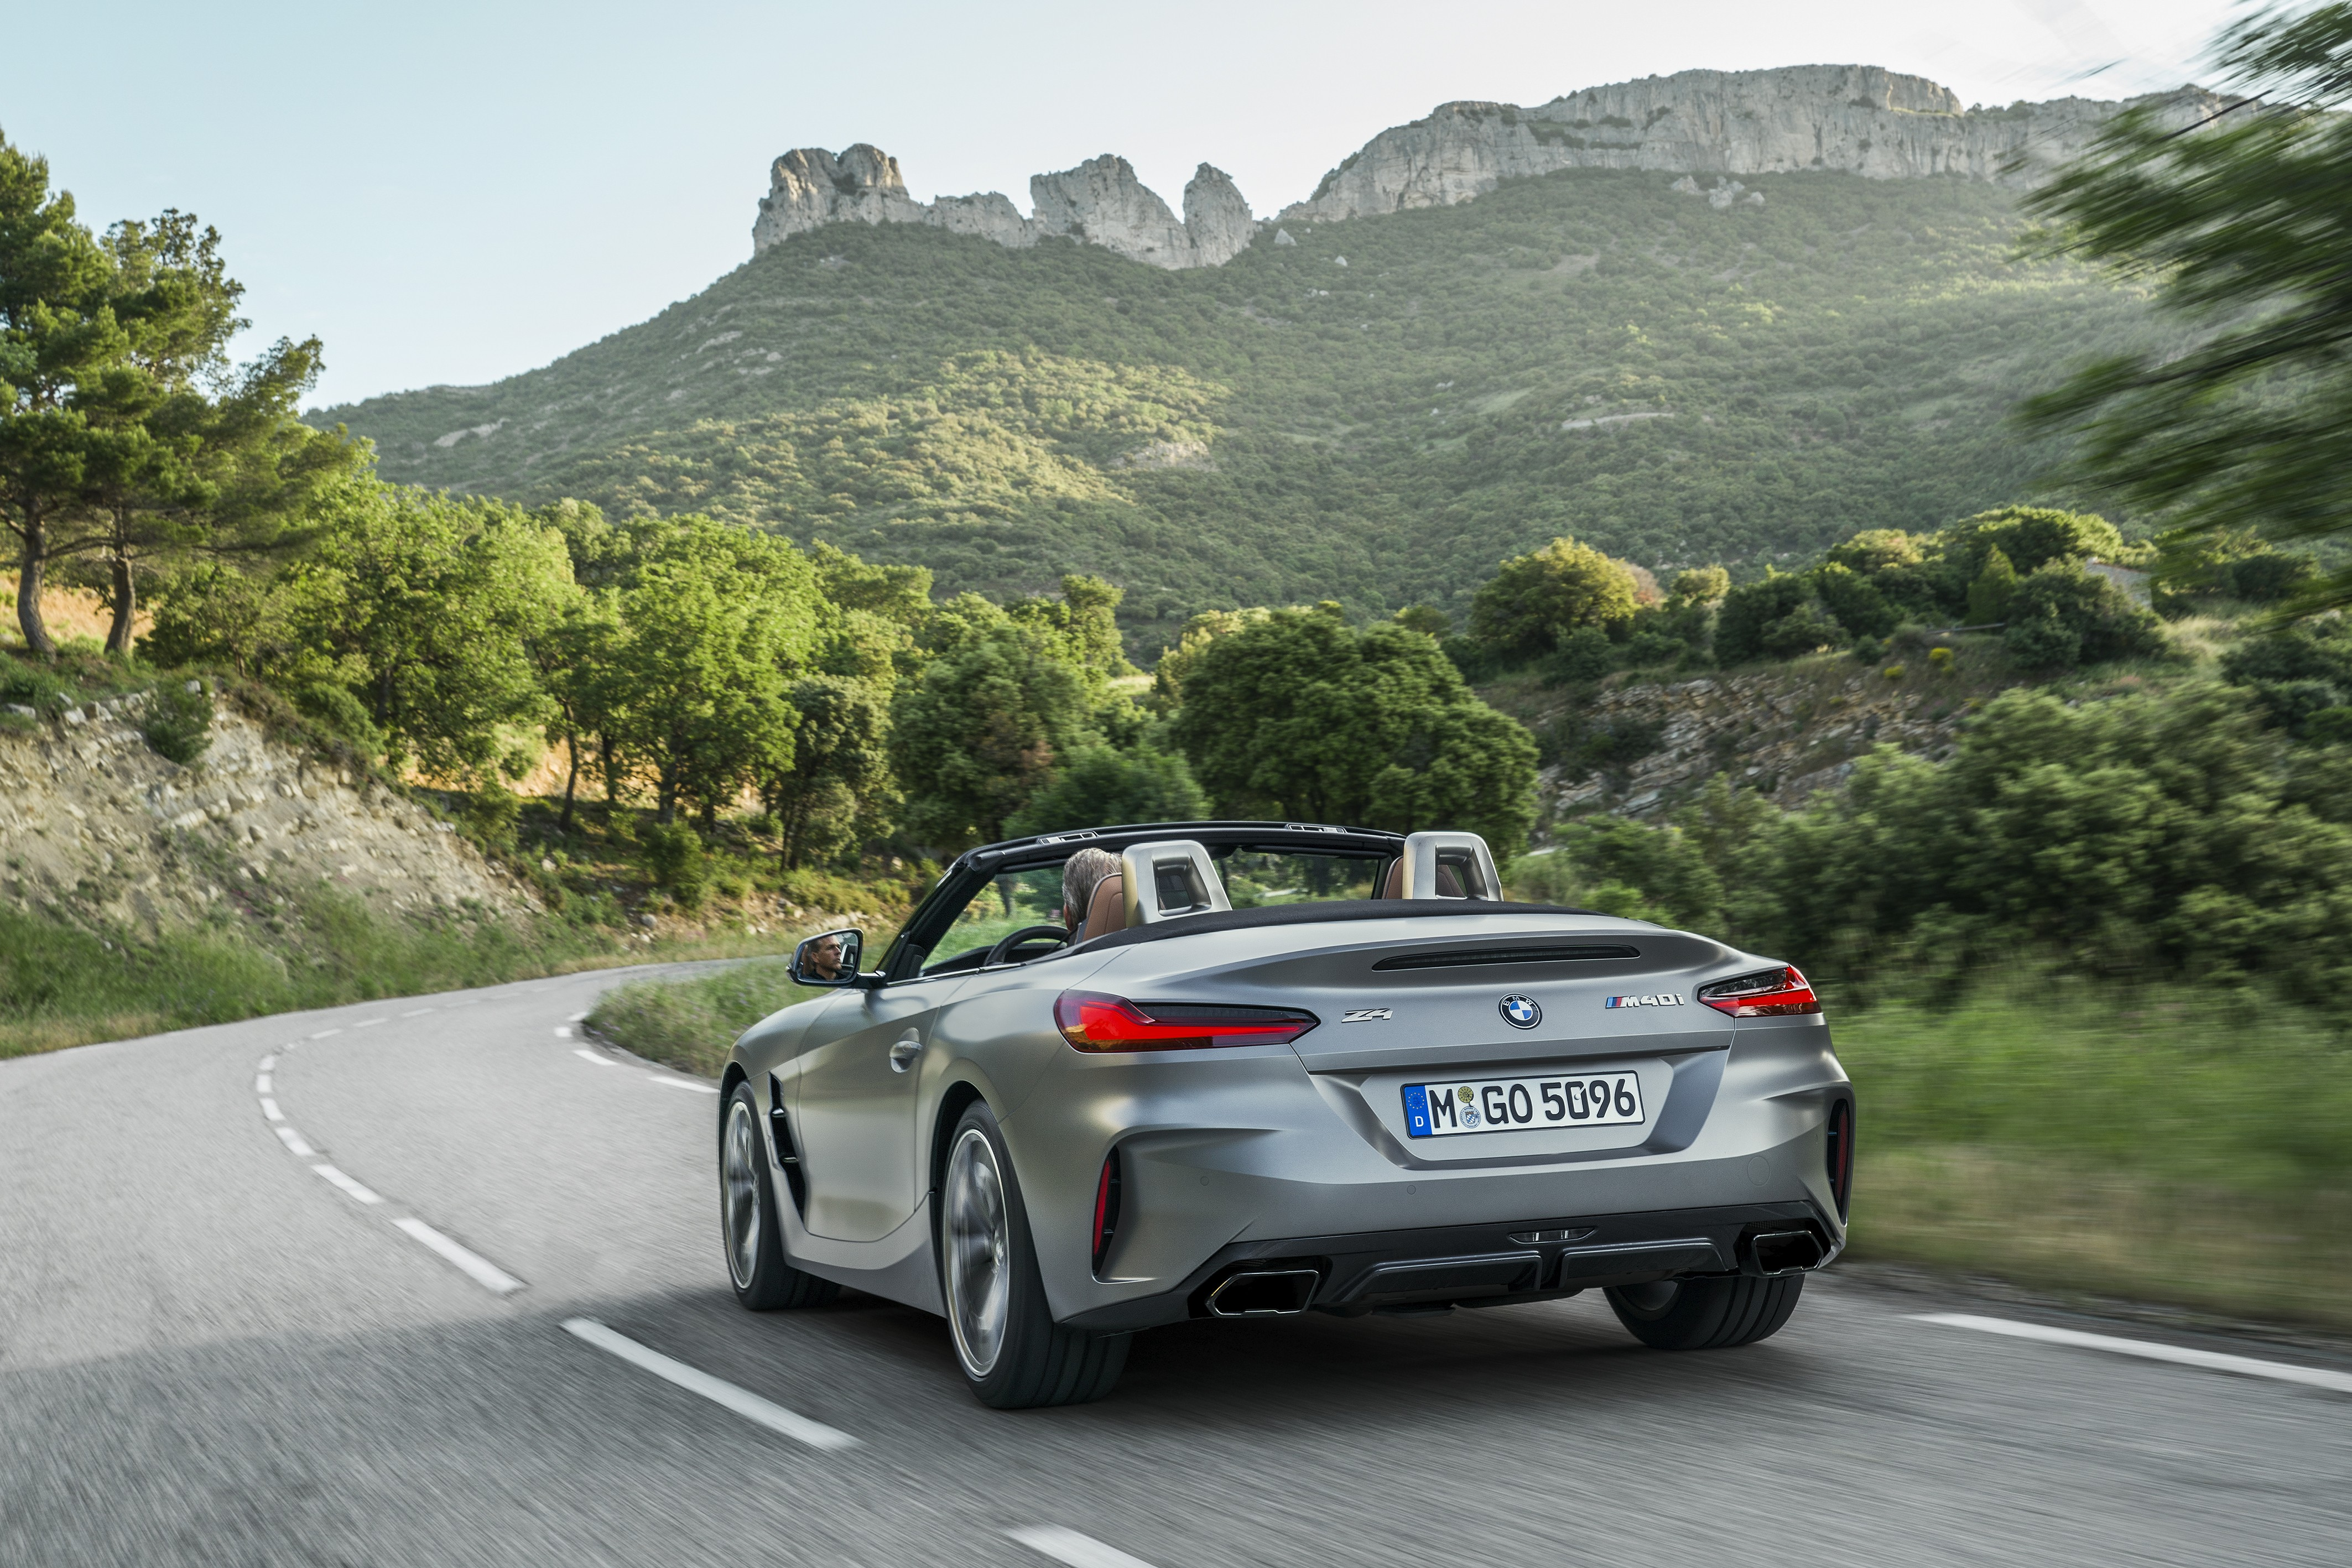 Bmw Offers Customer Care Package For N63 Engines Confirms